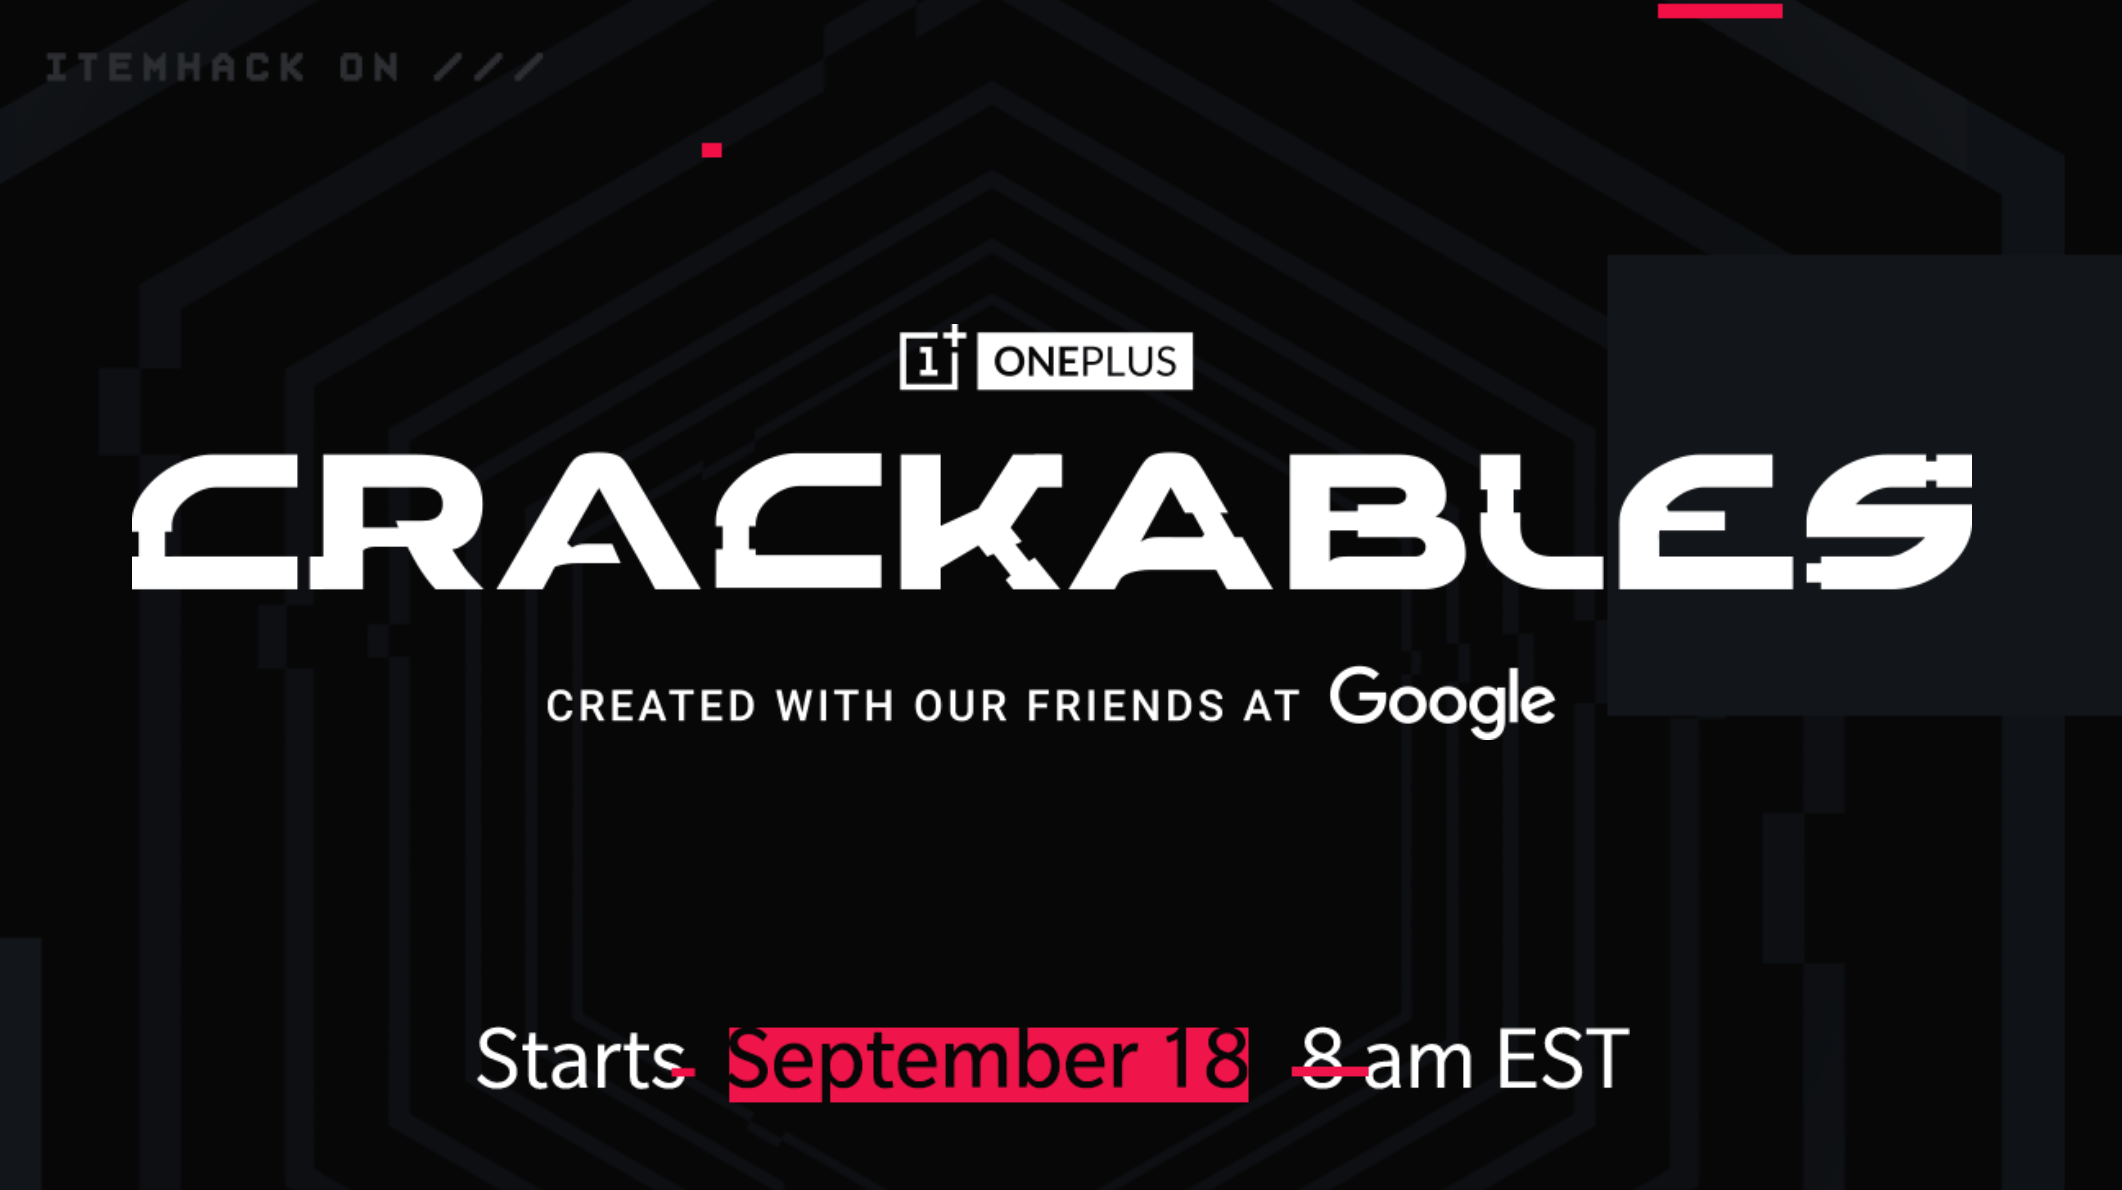 OnePlus Google Crackables game